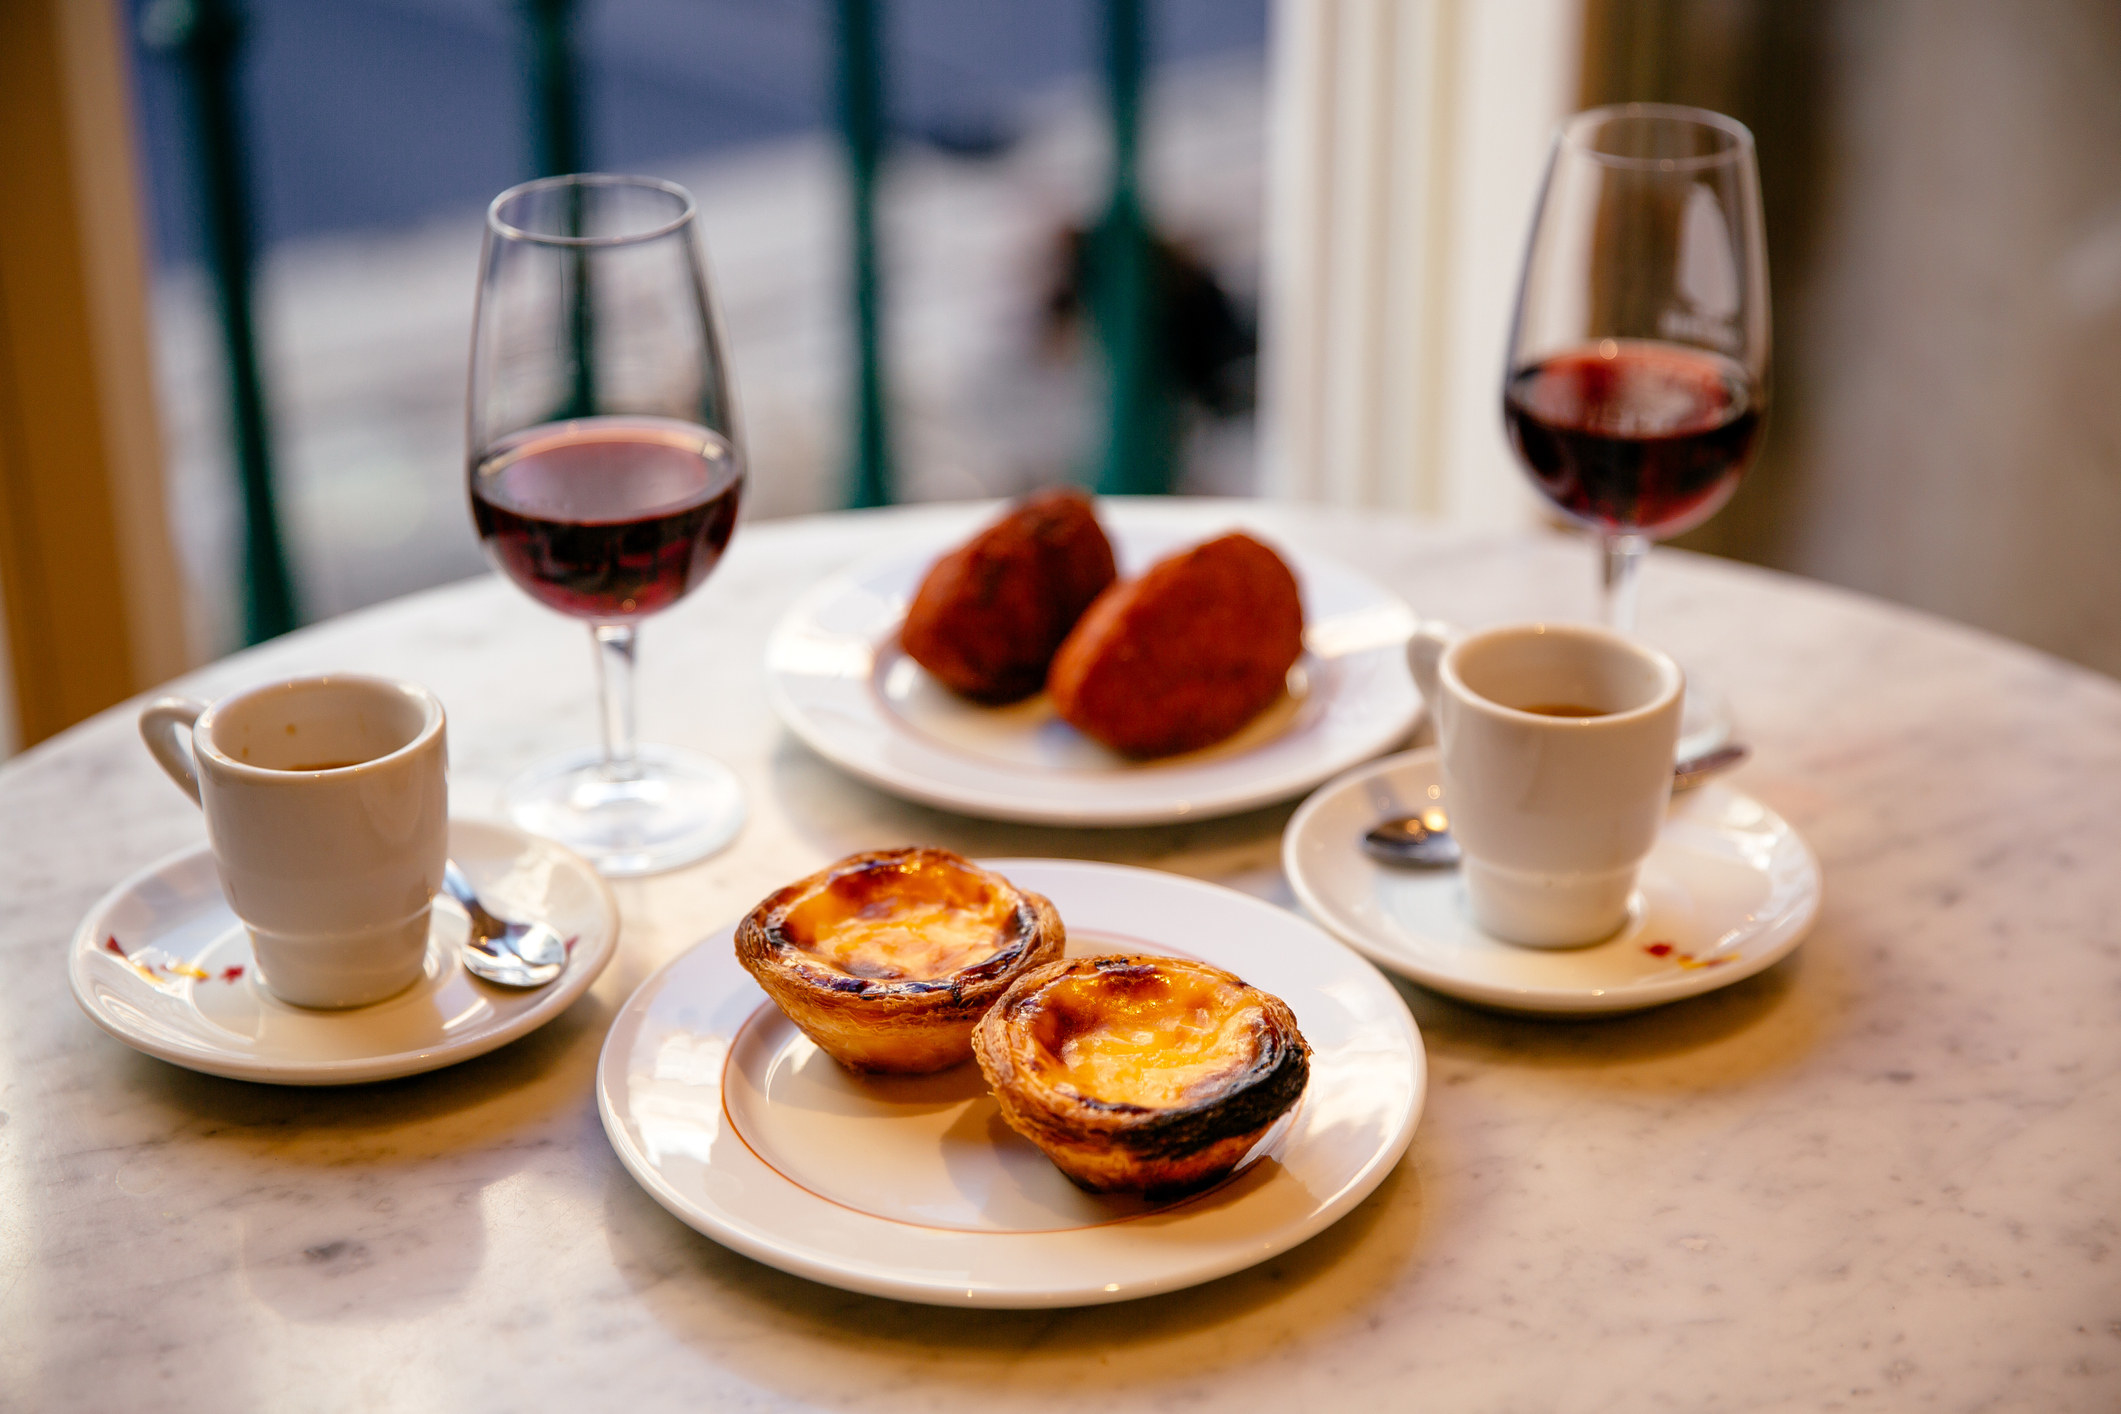 Wine and snacks in Portugal.